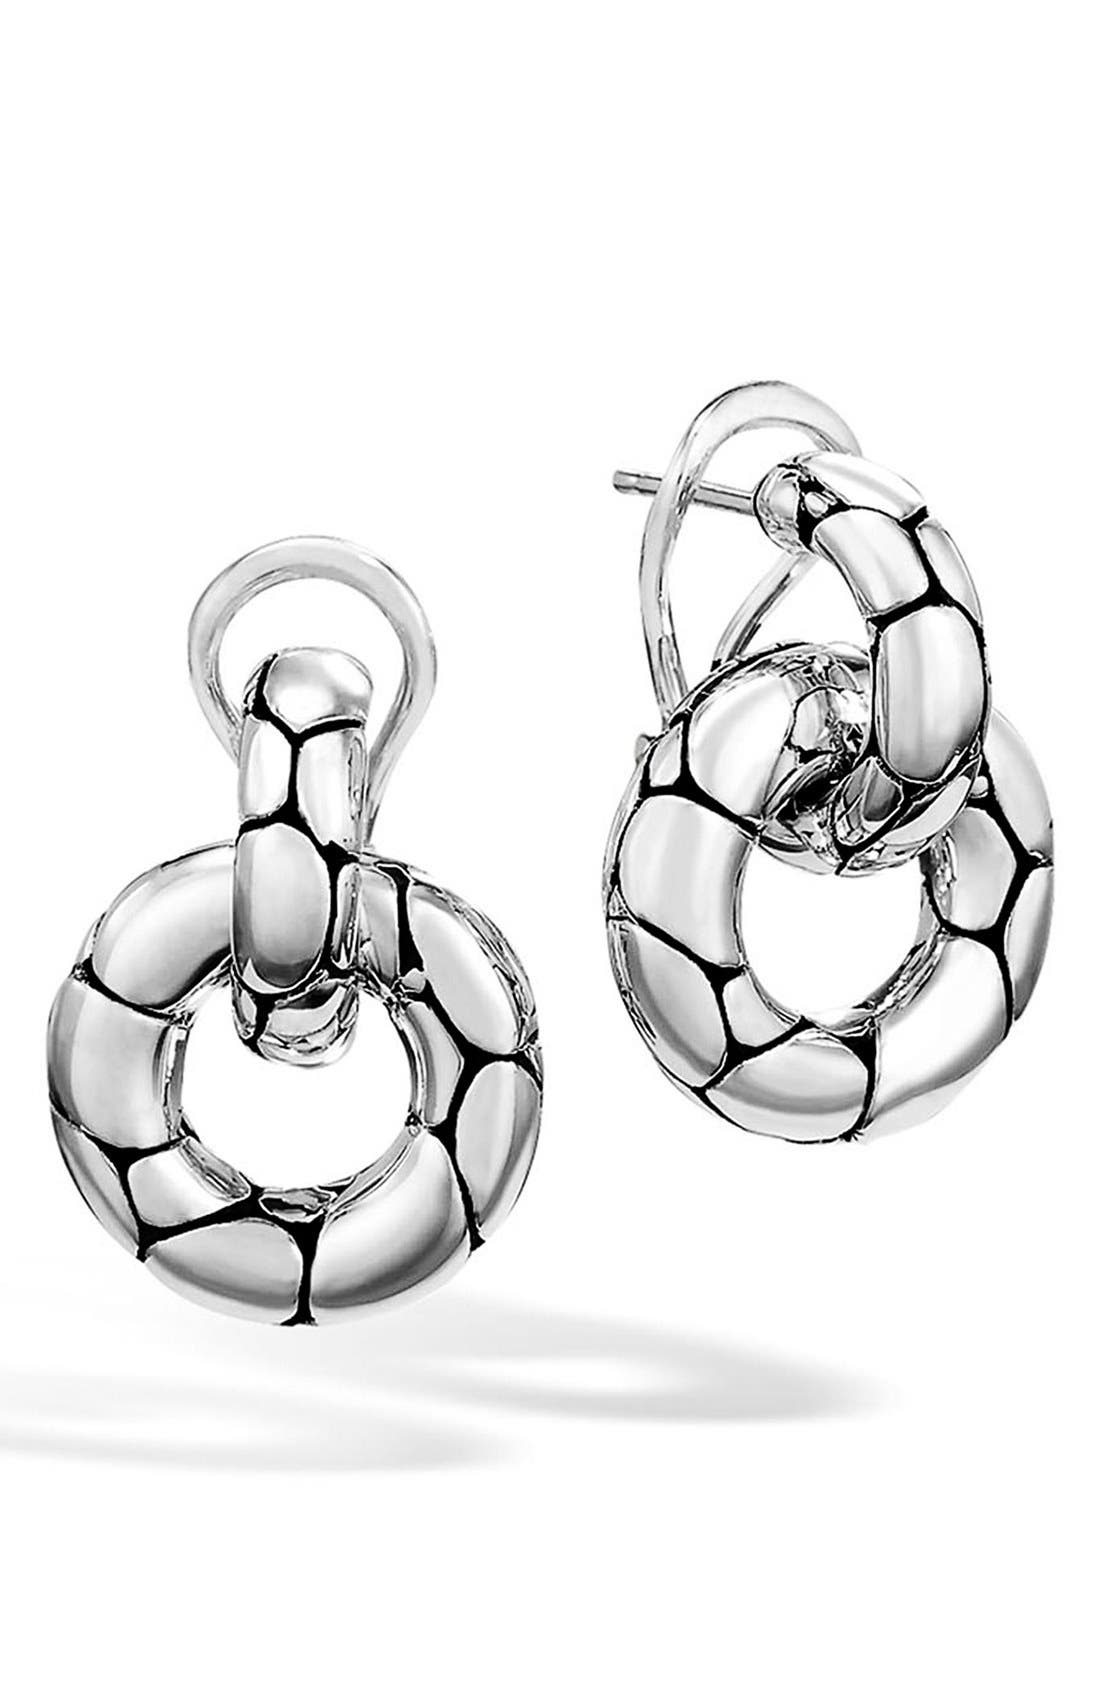 Alternate Image 1 Selected - John Hardy 'Kali' Small Door Knocker Earrings